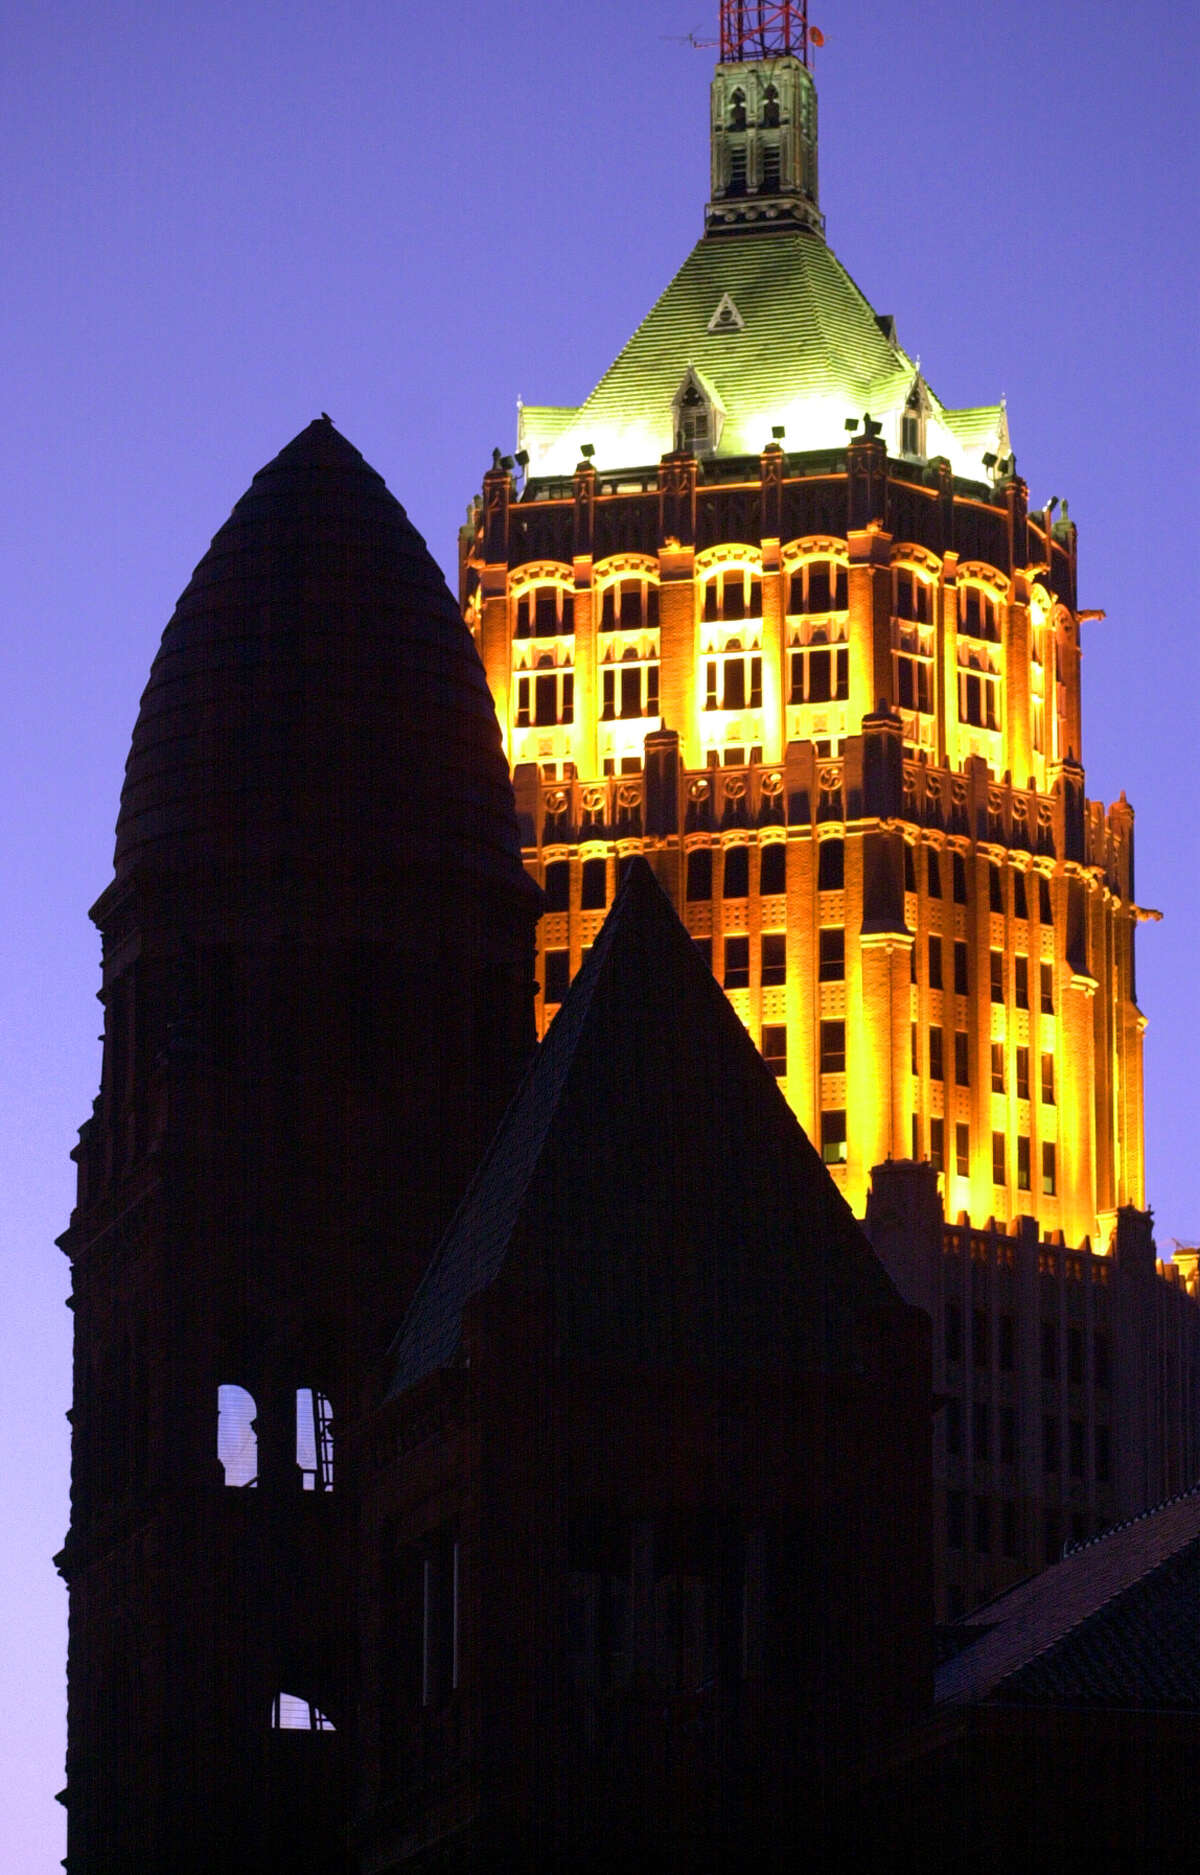 Contrasts in architectural styles in San Antonio can be seen in the Bexar County Courthouse (foreground) and the Tower Life Building (rear).